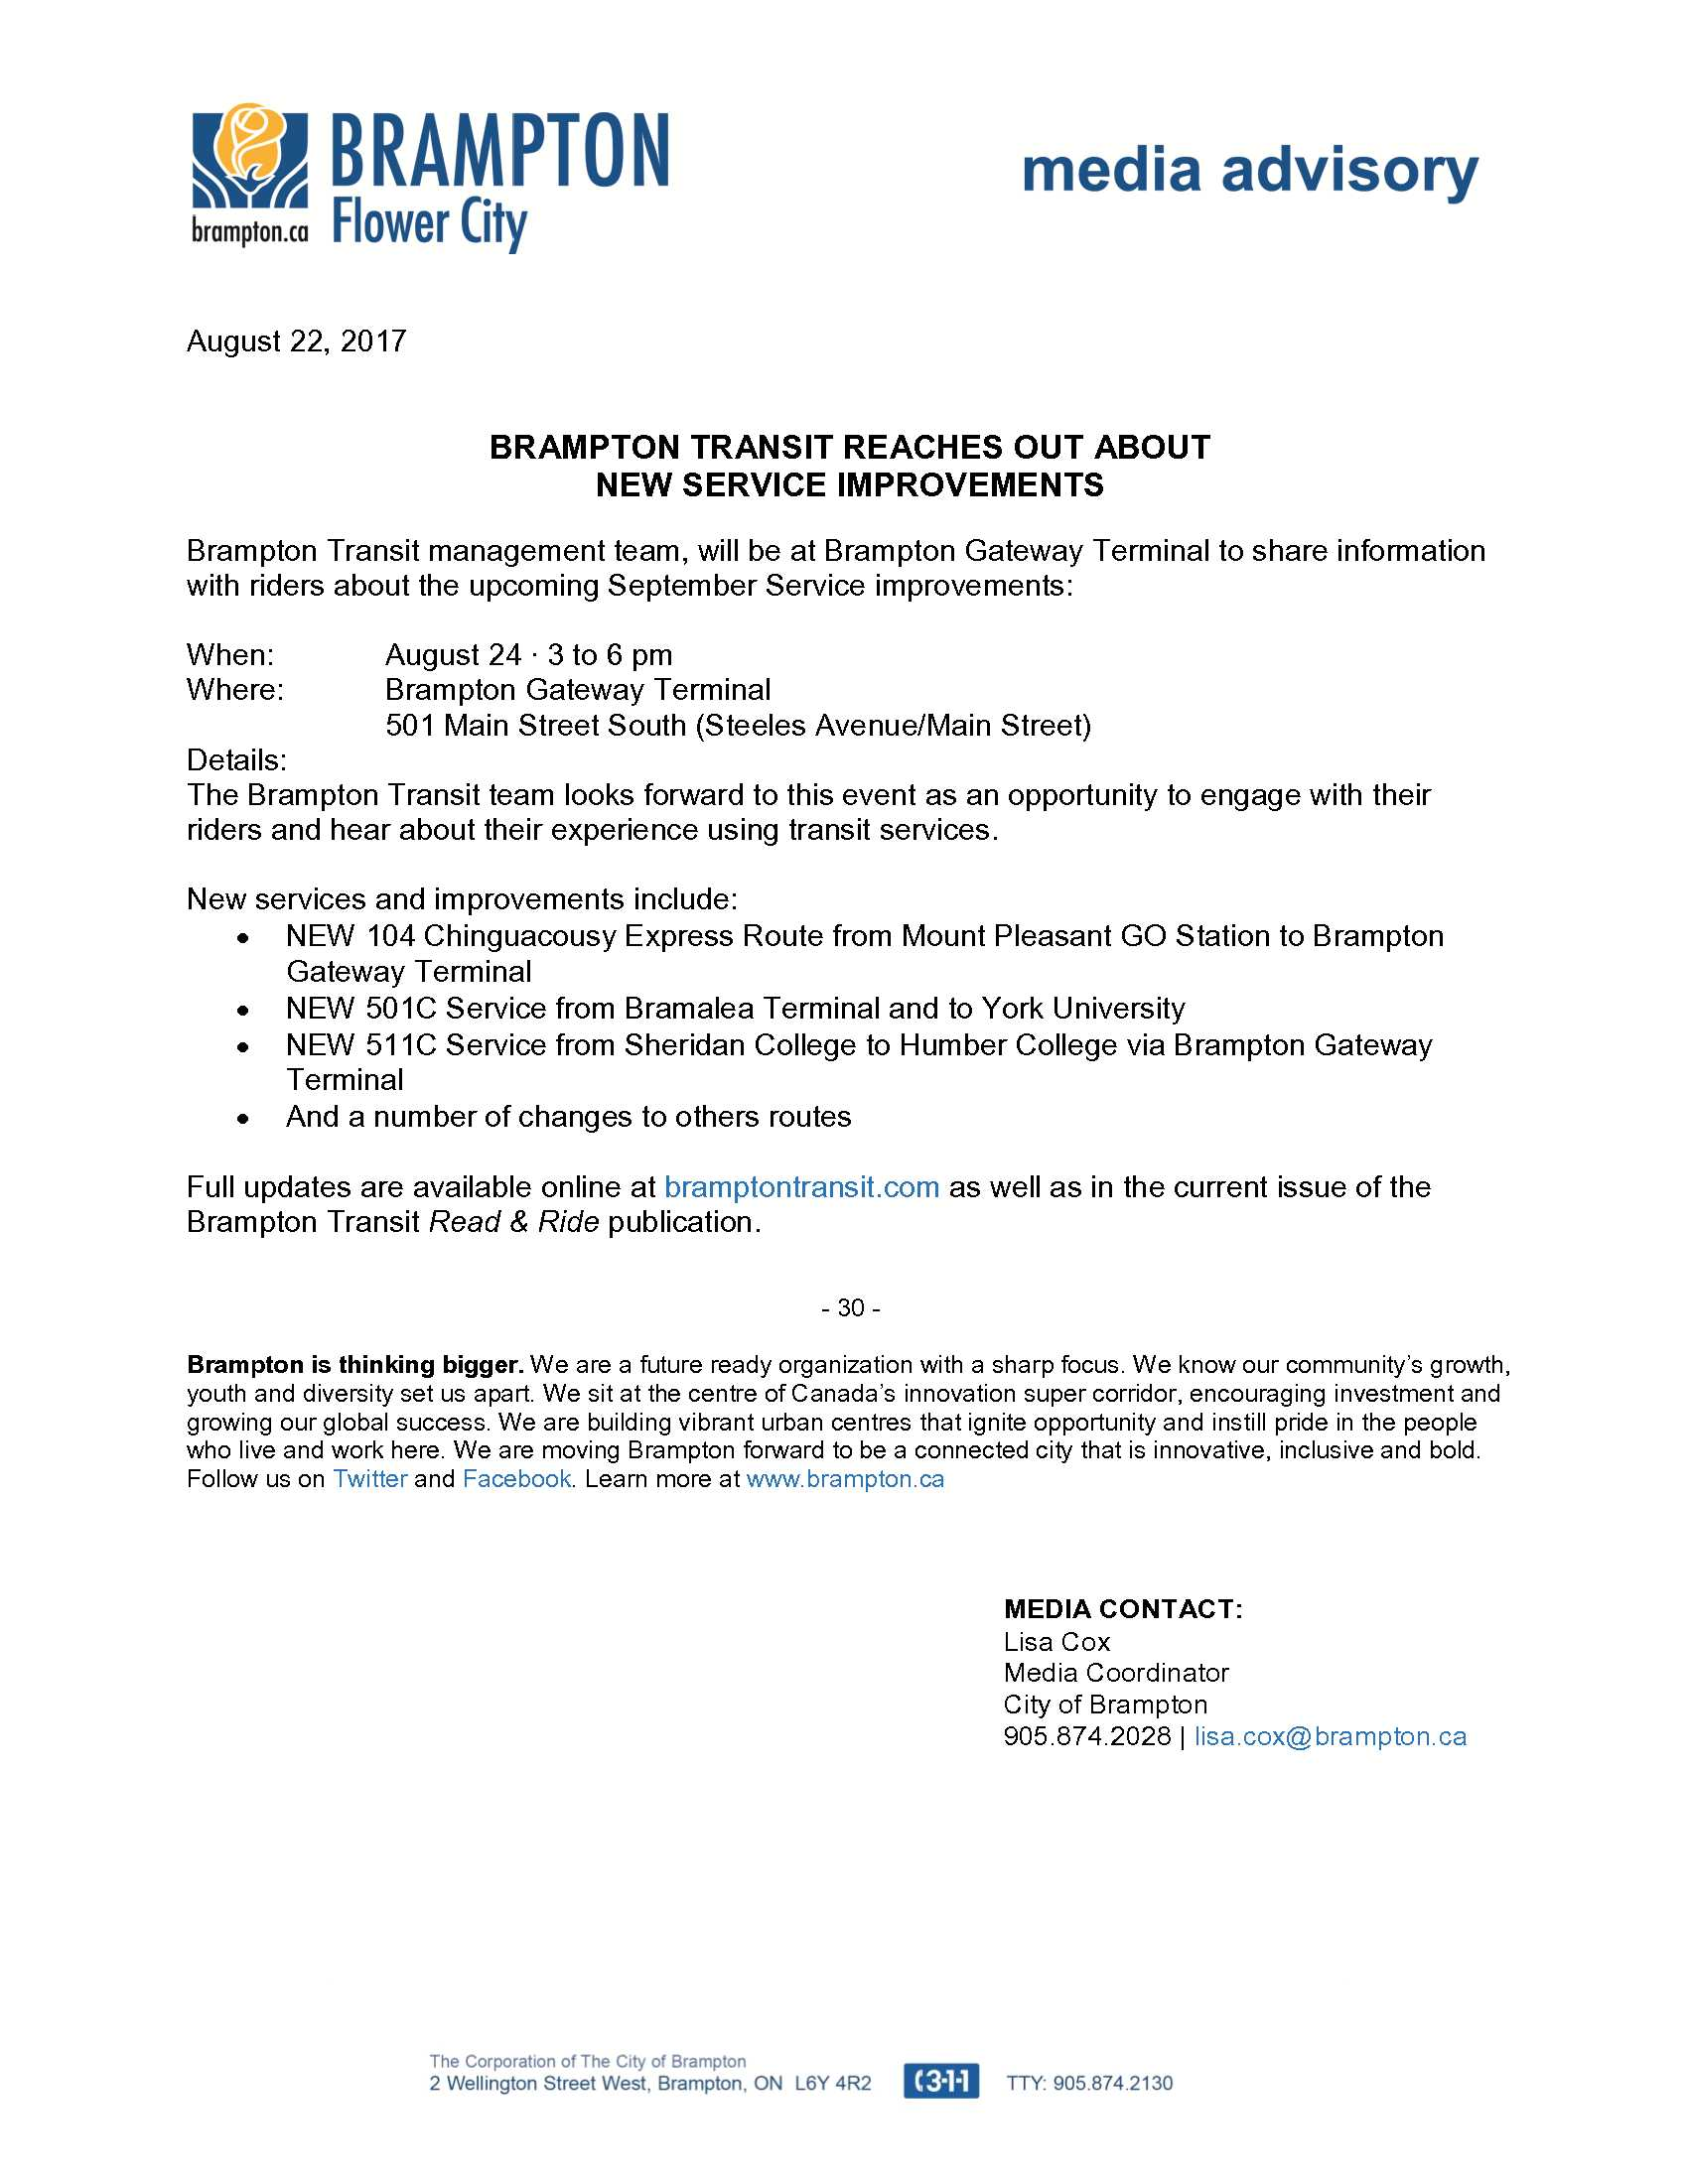 08.22.2017_Media Advisory Brampton Transit Service Improvements.jpg